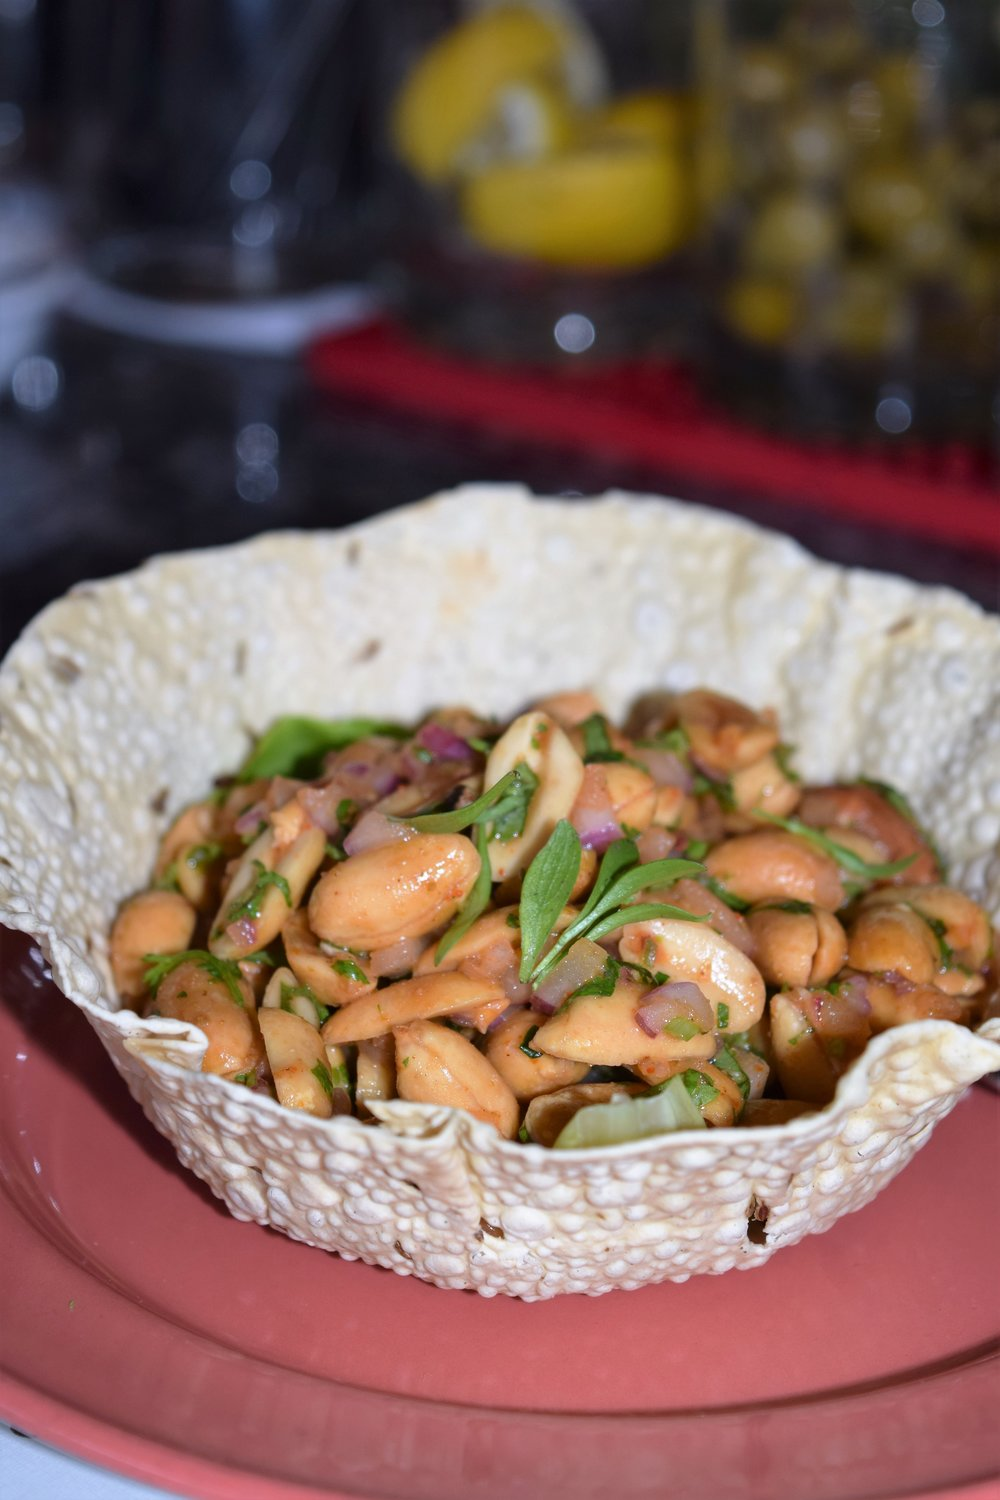 MASALA PEANUTS (roasted peanuts, fresh lemon, red chili and cilantro)